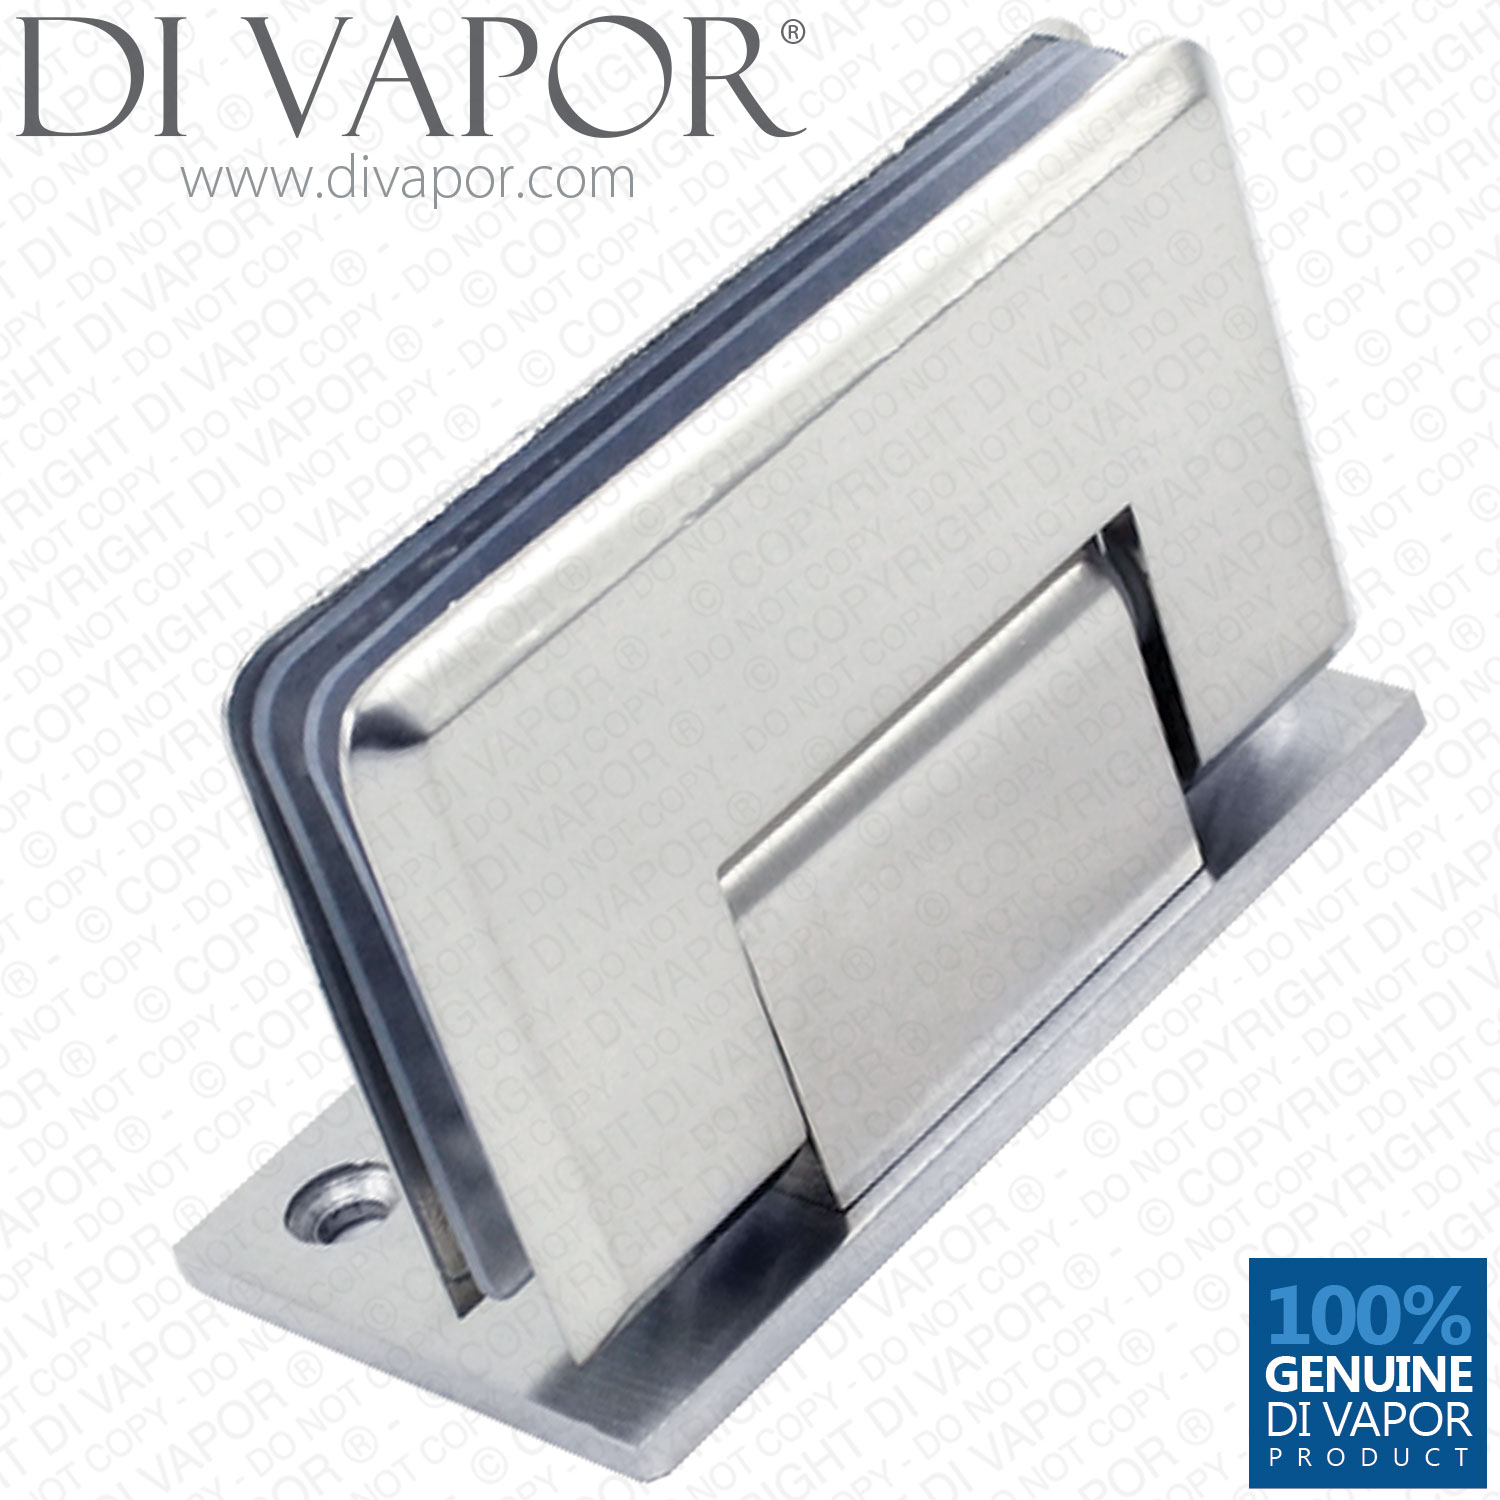 90 Degree Glass Door Hinge Bracket Light Satin Nickel Finish Zinc Alloy Wall eBay